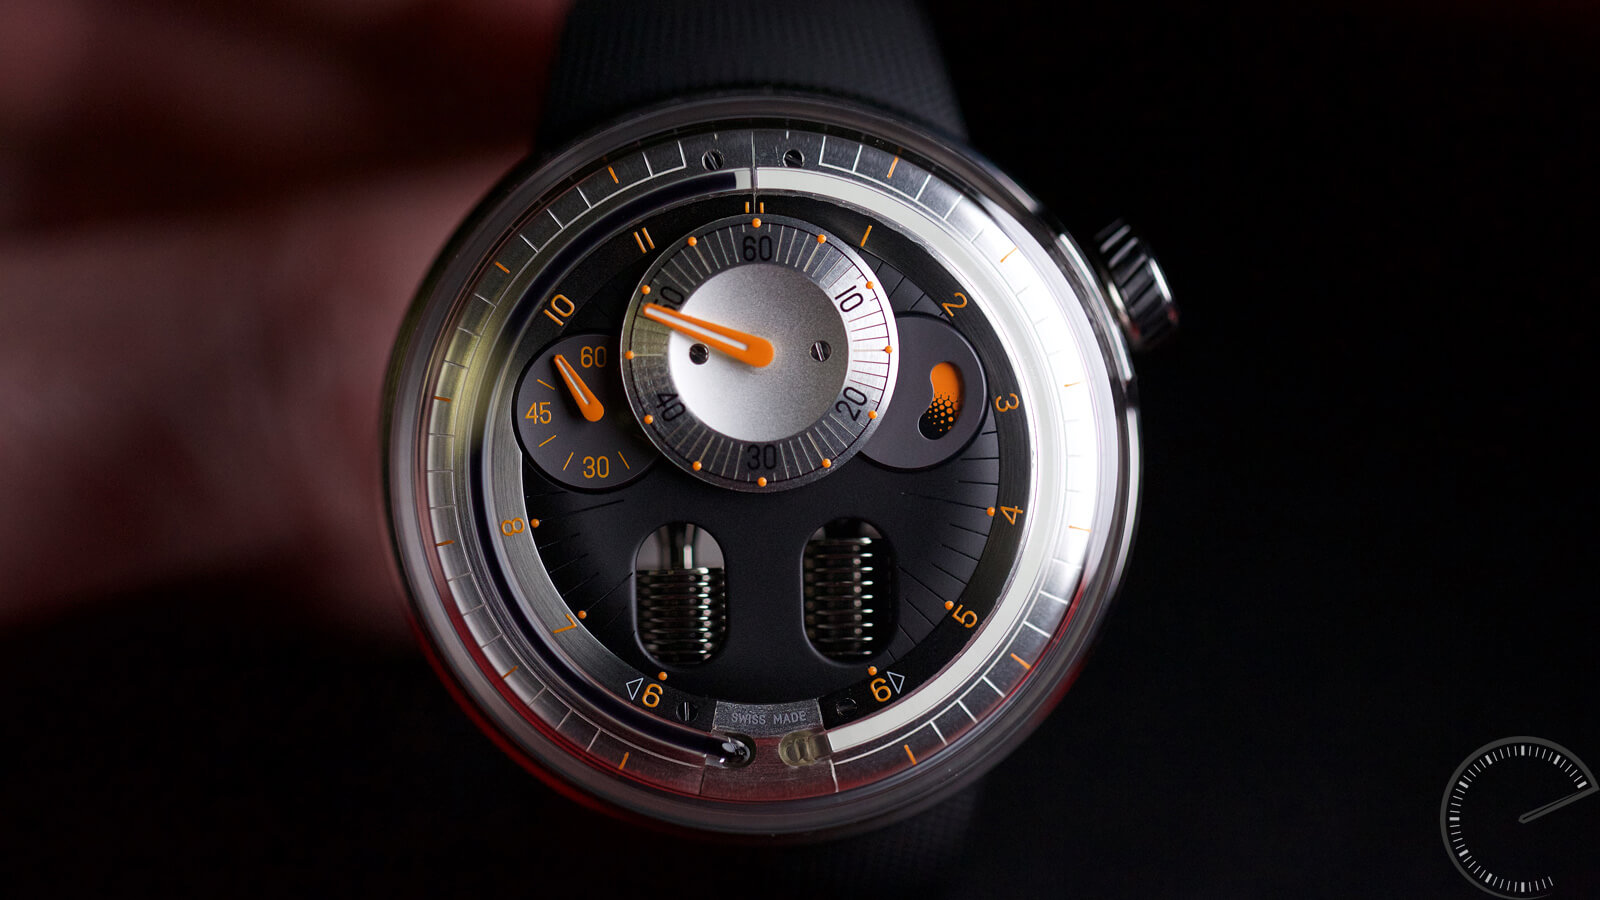 HYT H0 - timepiece with fluidic display